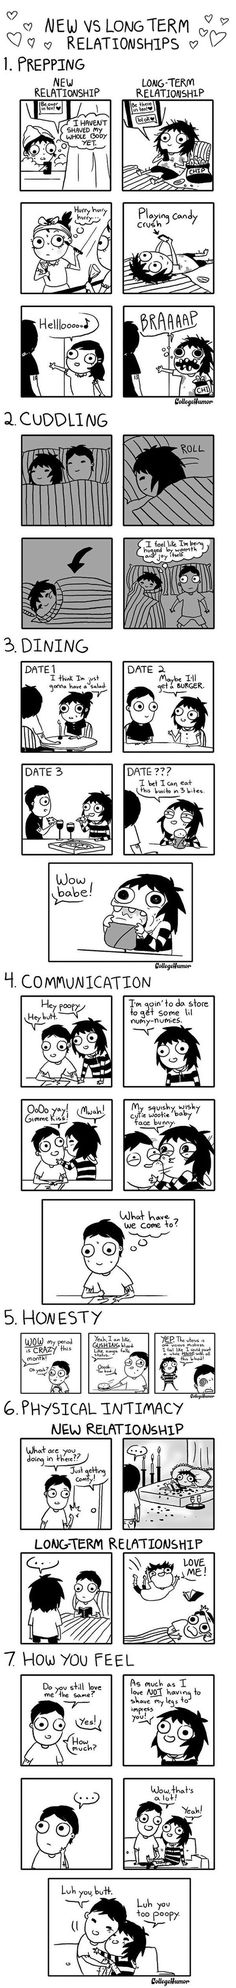 7 Ways Your Relationship Changes Over Time - 9GAG: